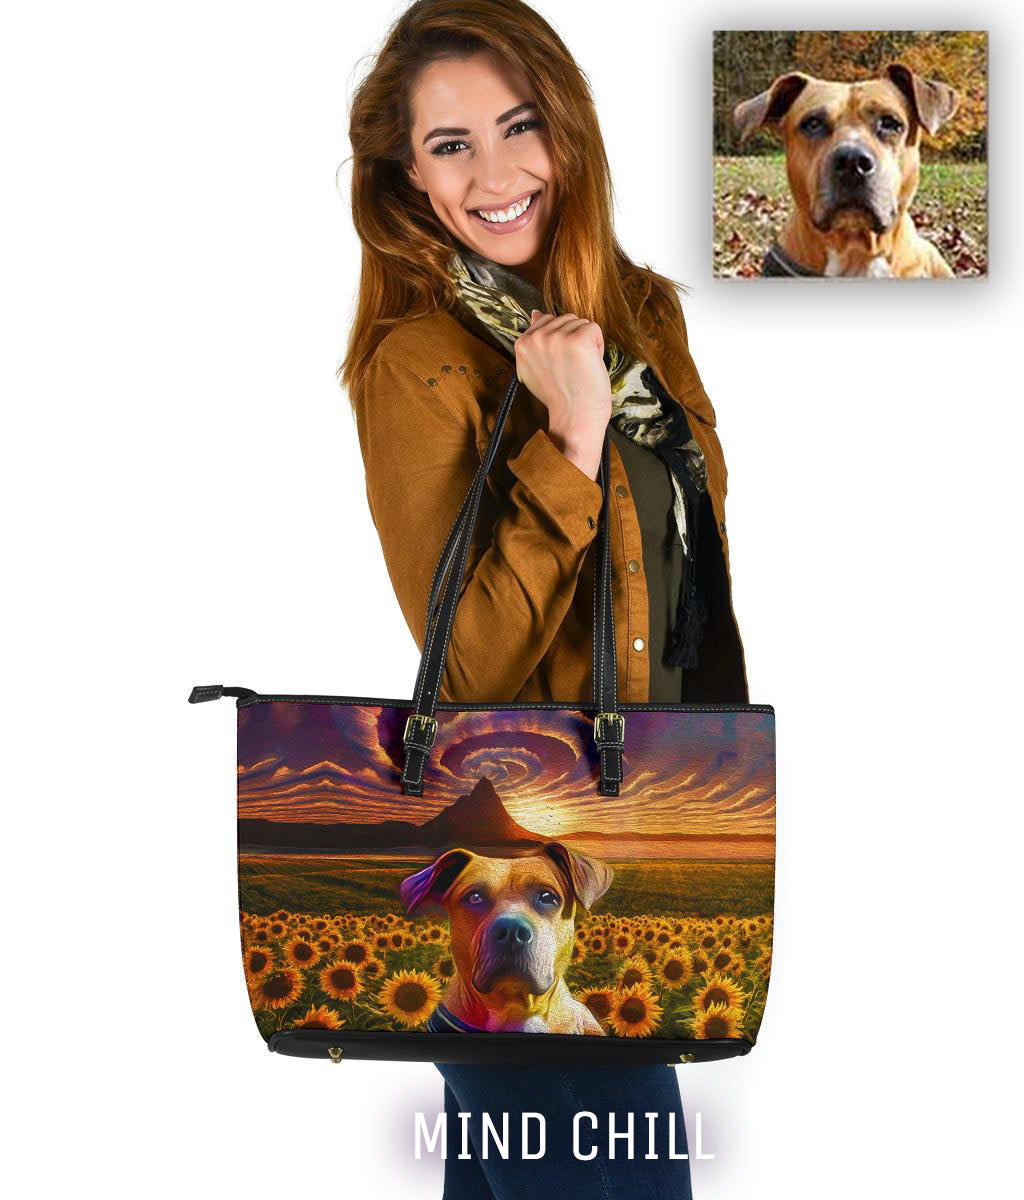 Custom Pet Portrait Leather Tote Bag - Sunflower Storm Mind Chill